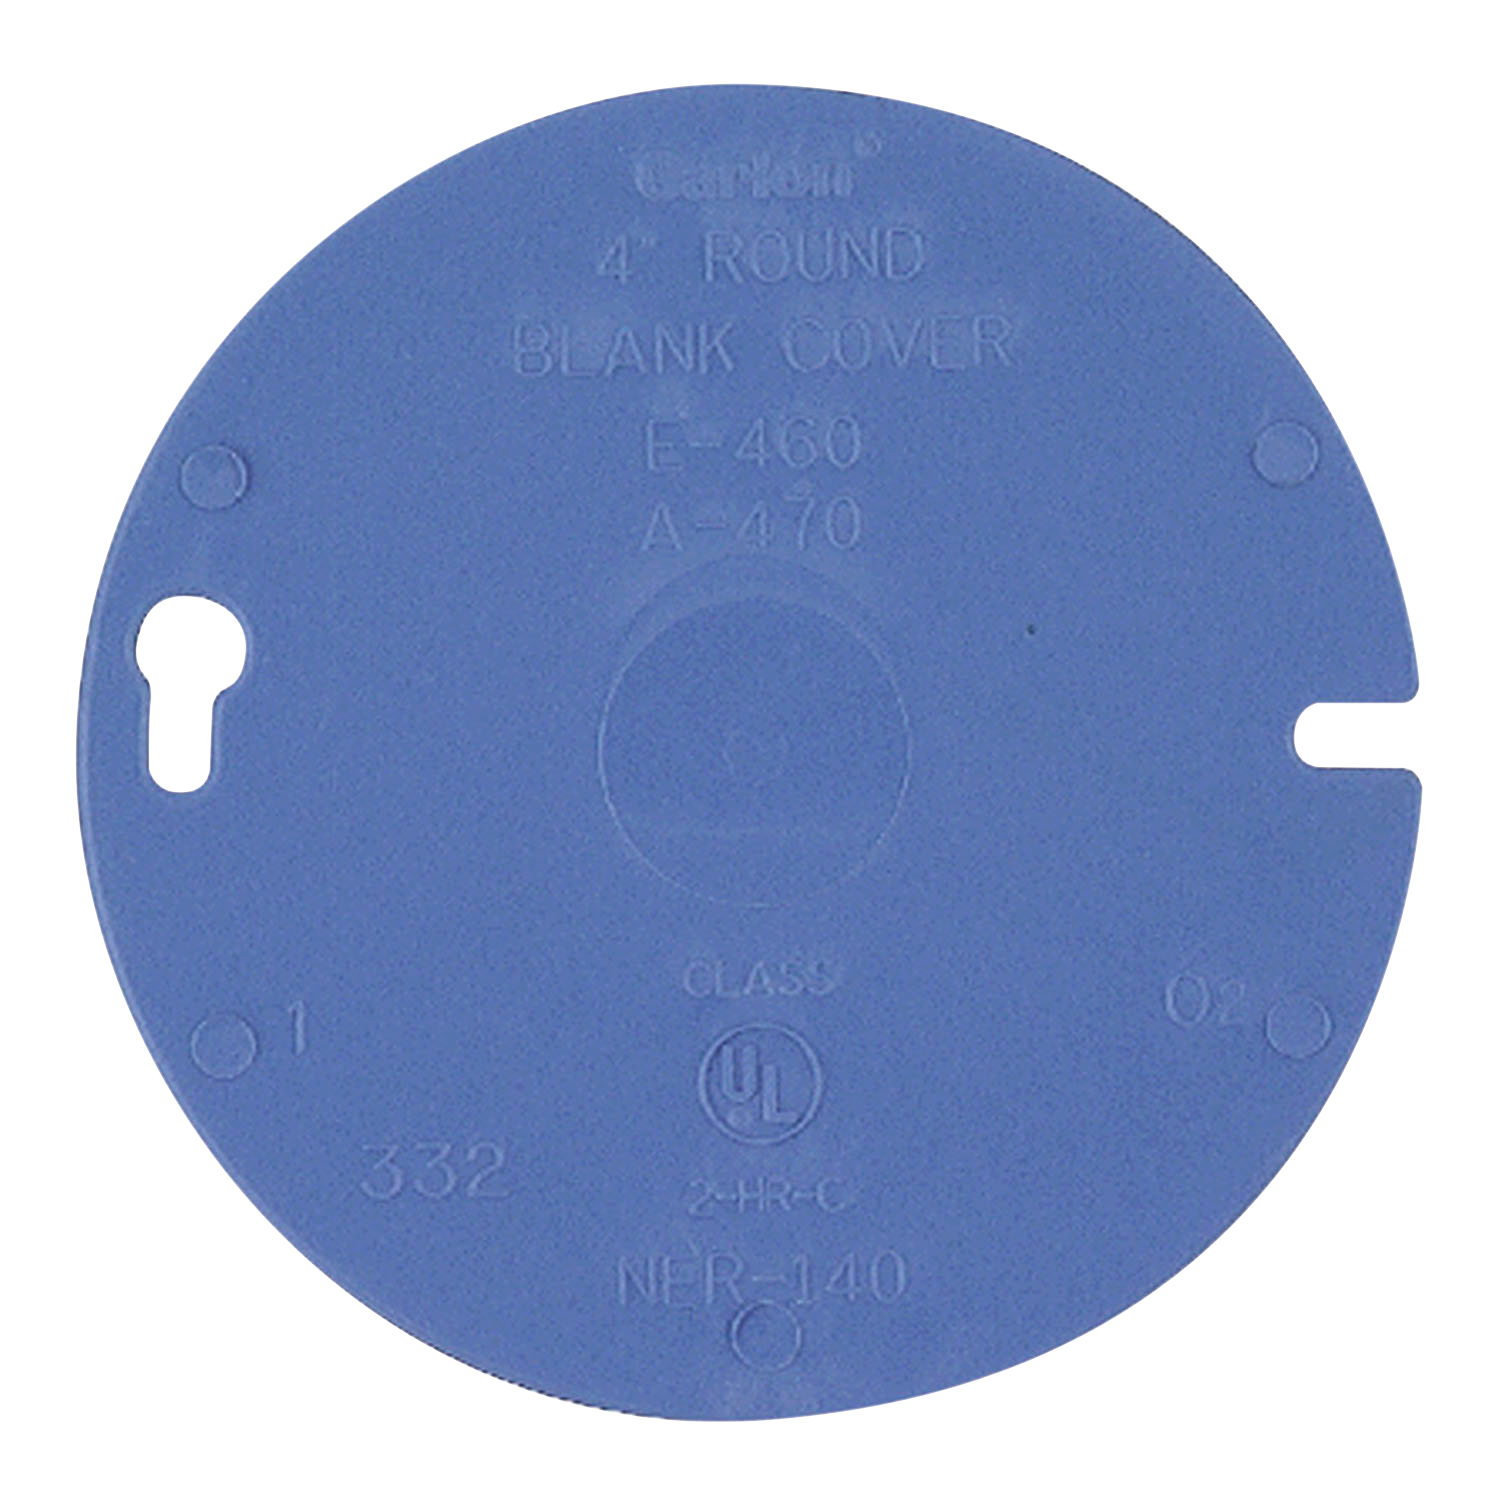 Carlon® Round Box Cover, Blank Non-Metallic, 1 Gang, 4 in Diameter, Round Shape, Ceiling Mounting, Blue